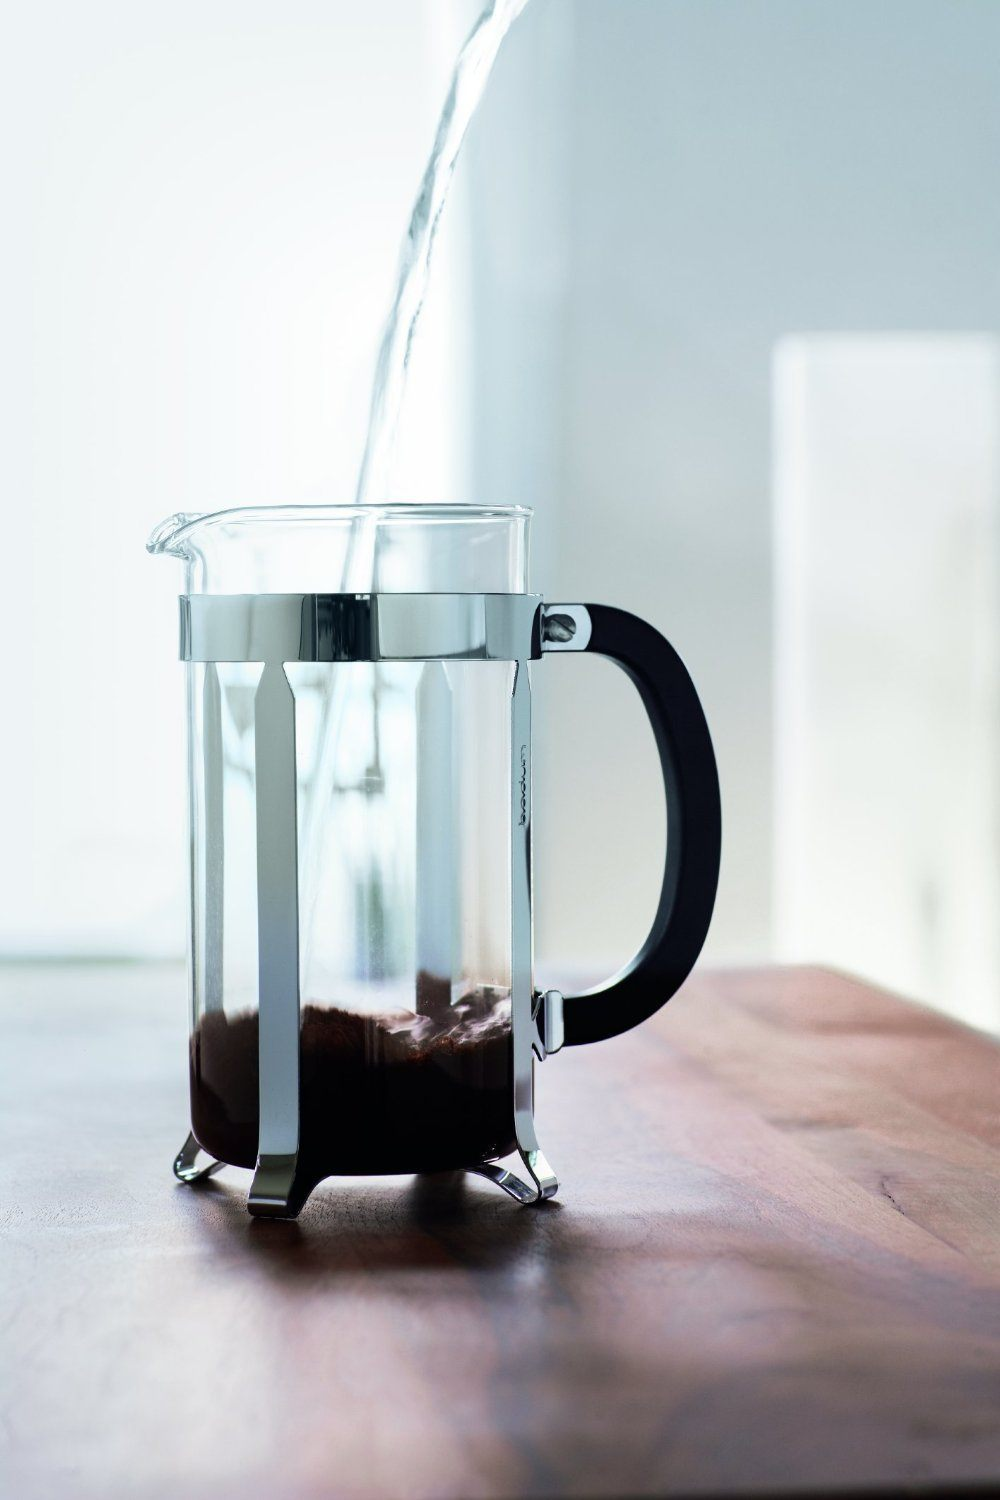 pouring water into a french press